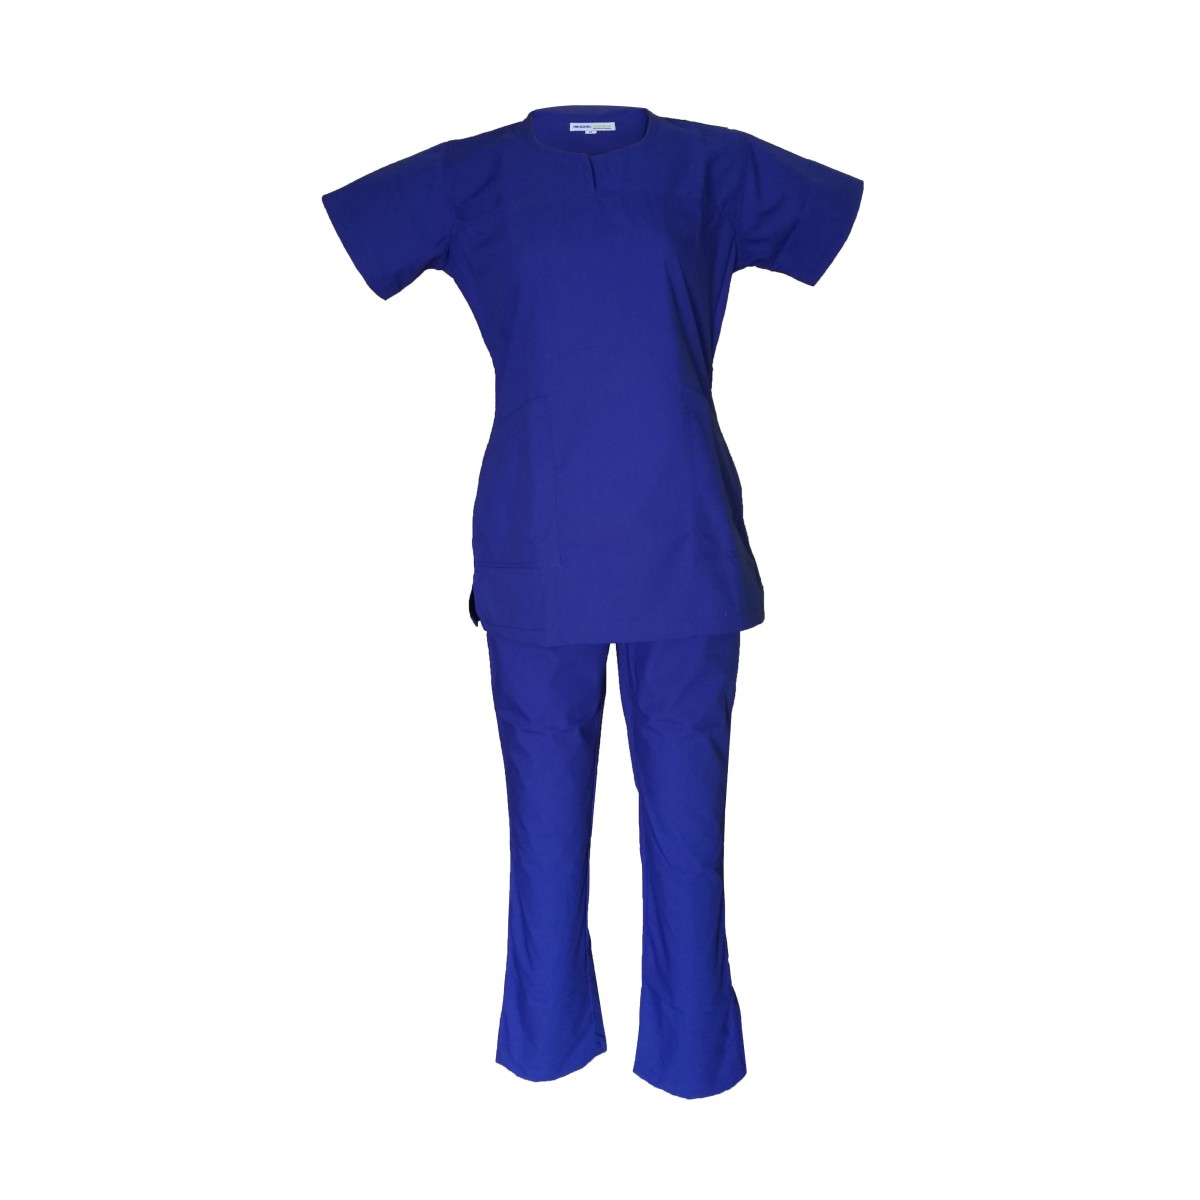 Female Y-Crossover Scrub Bright Blue